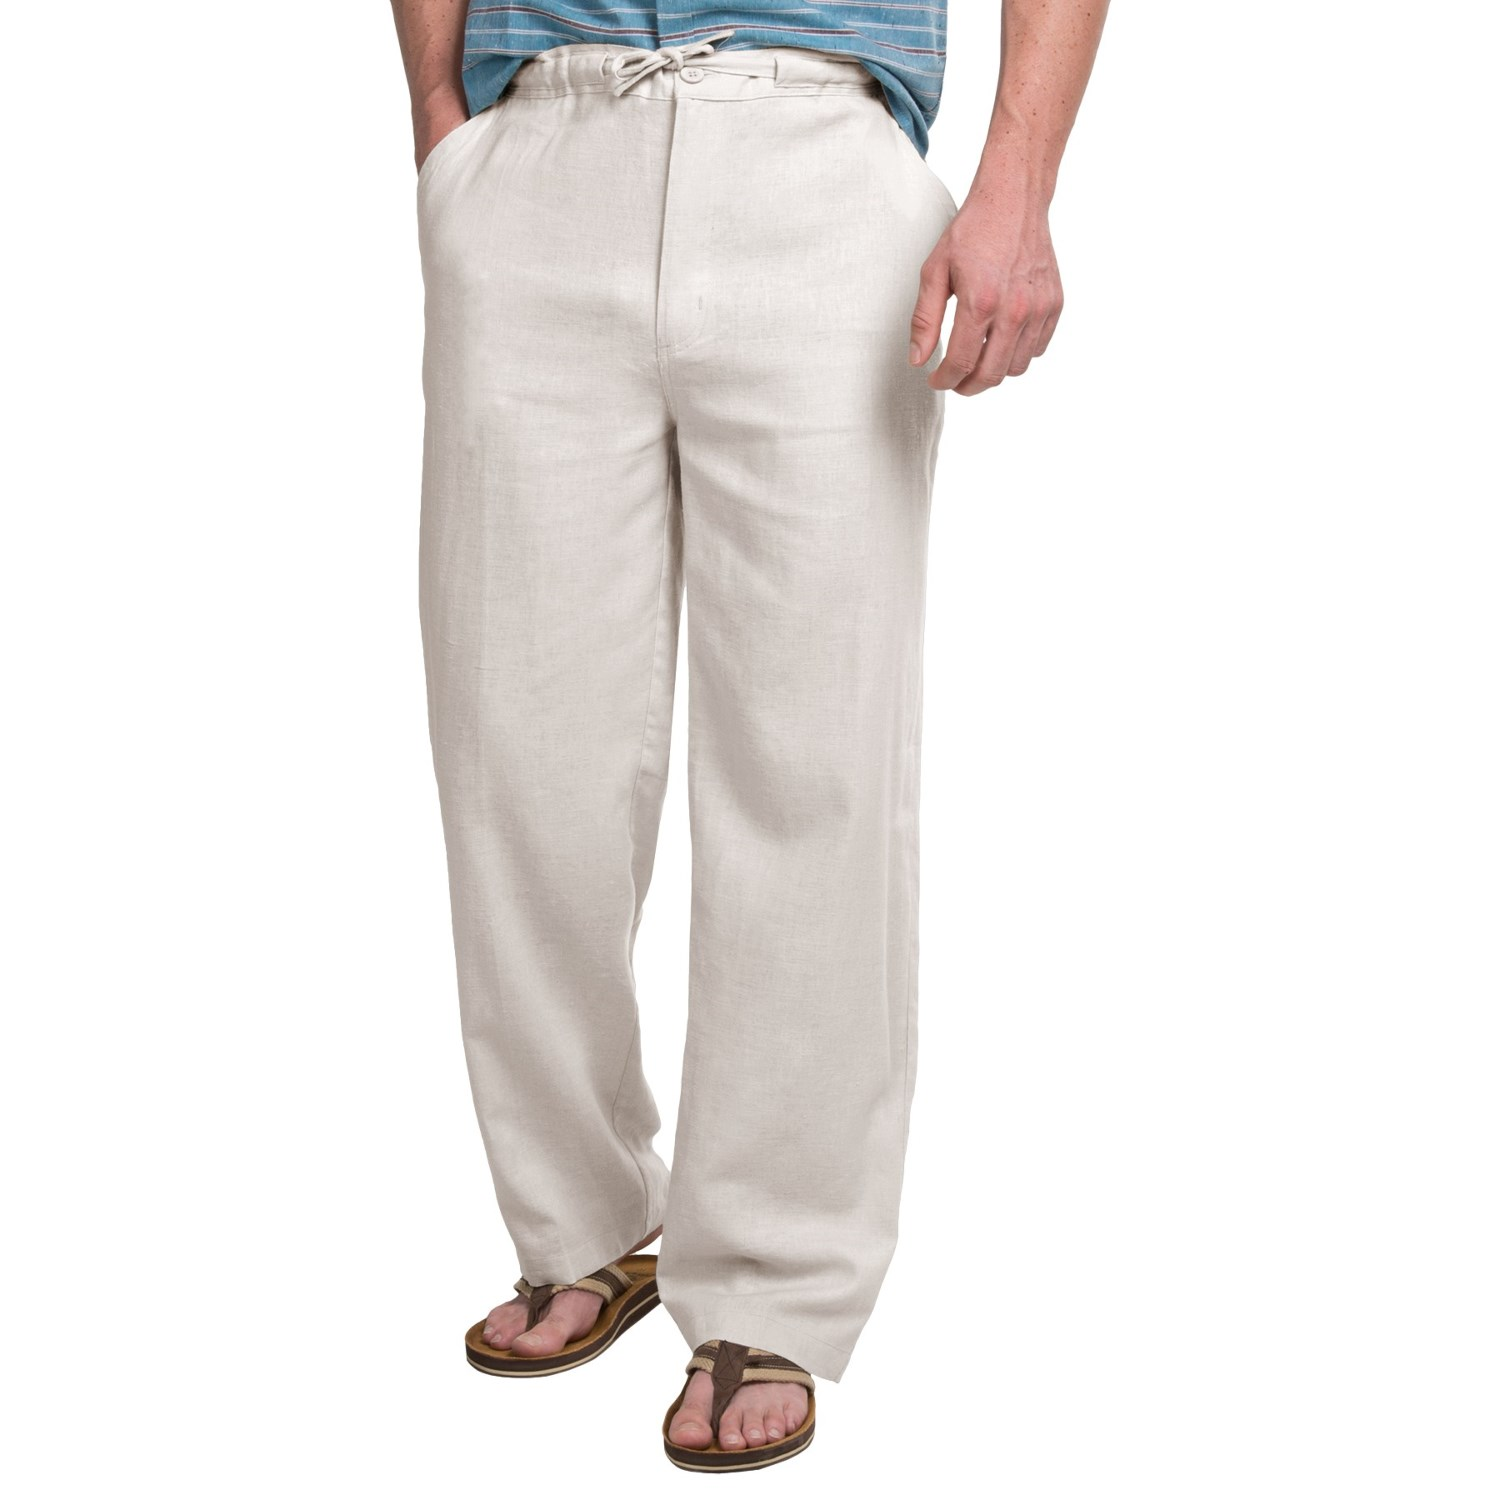 Mens Linen Pajama Pants - Pant Row